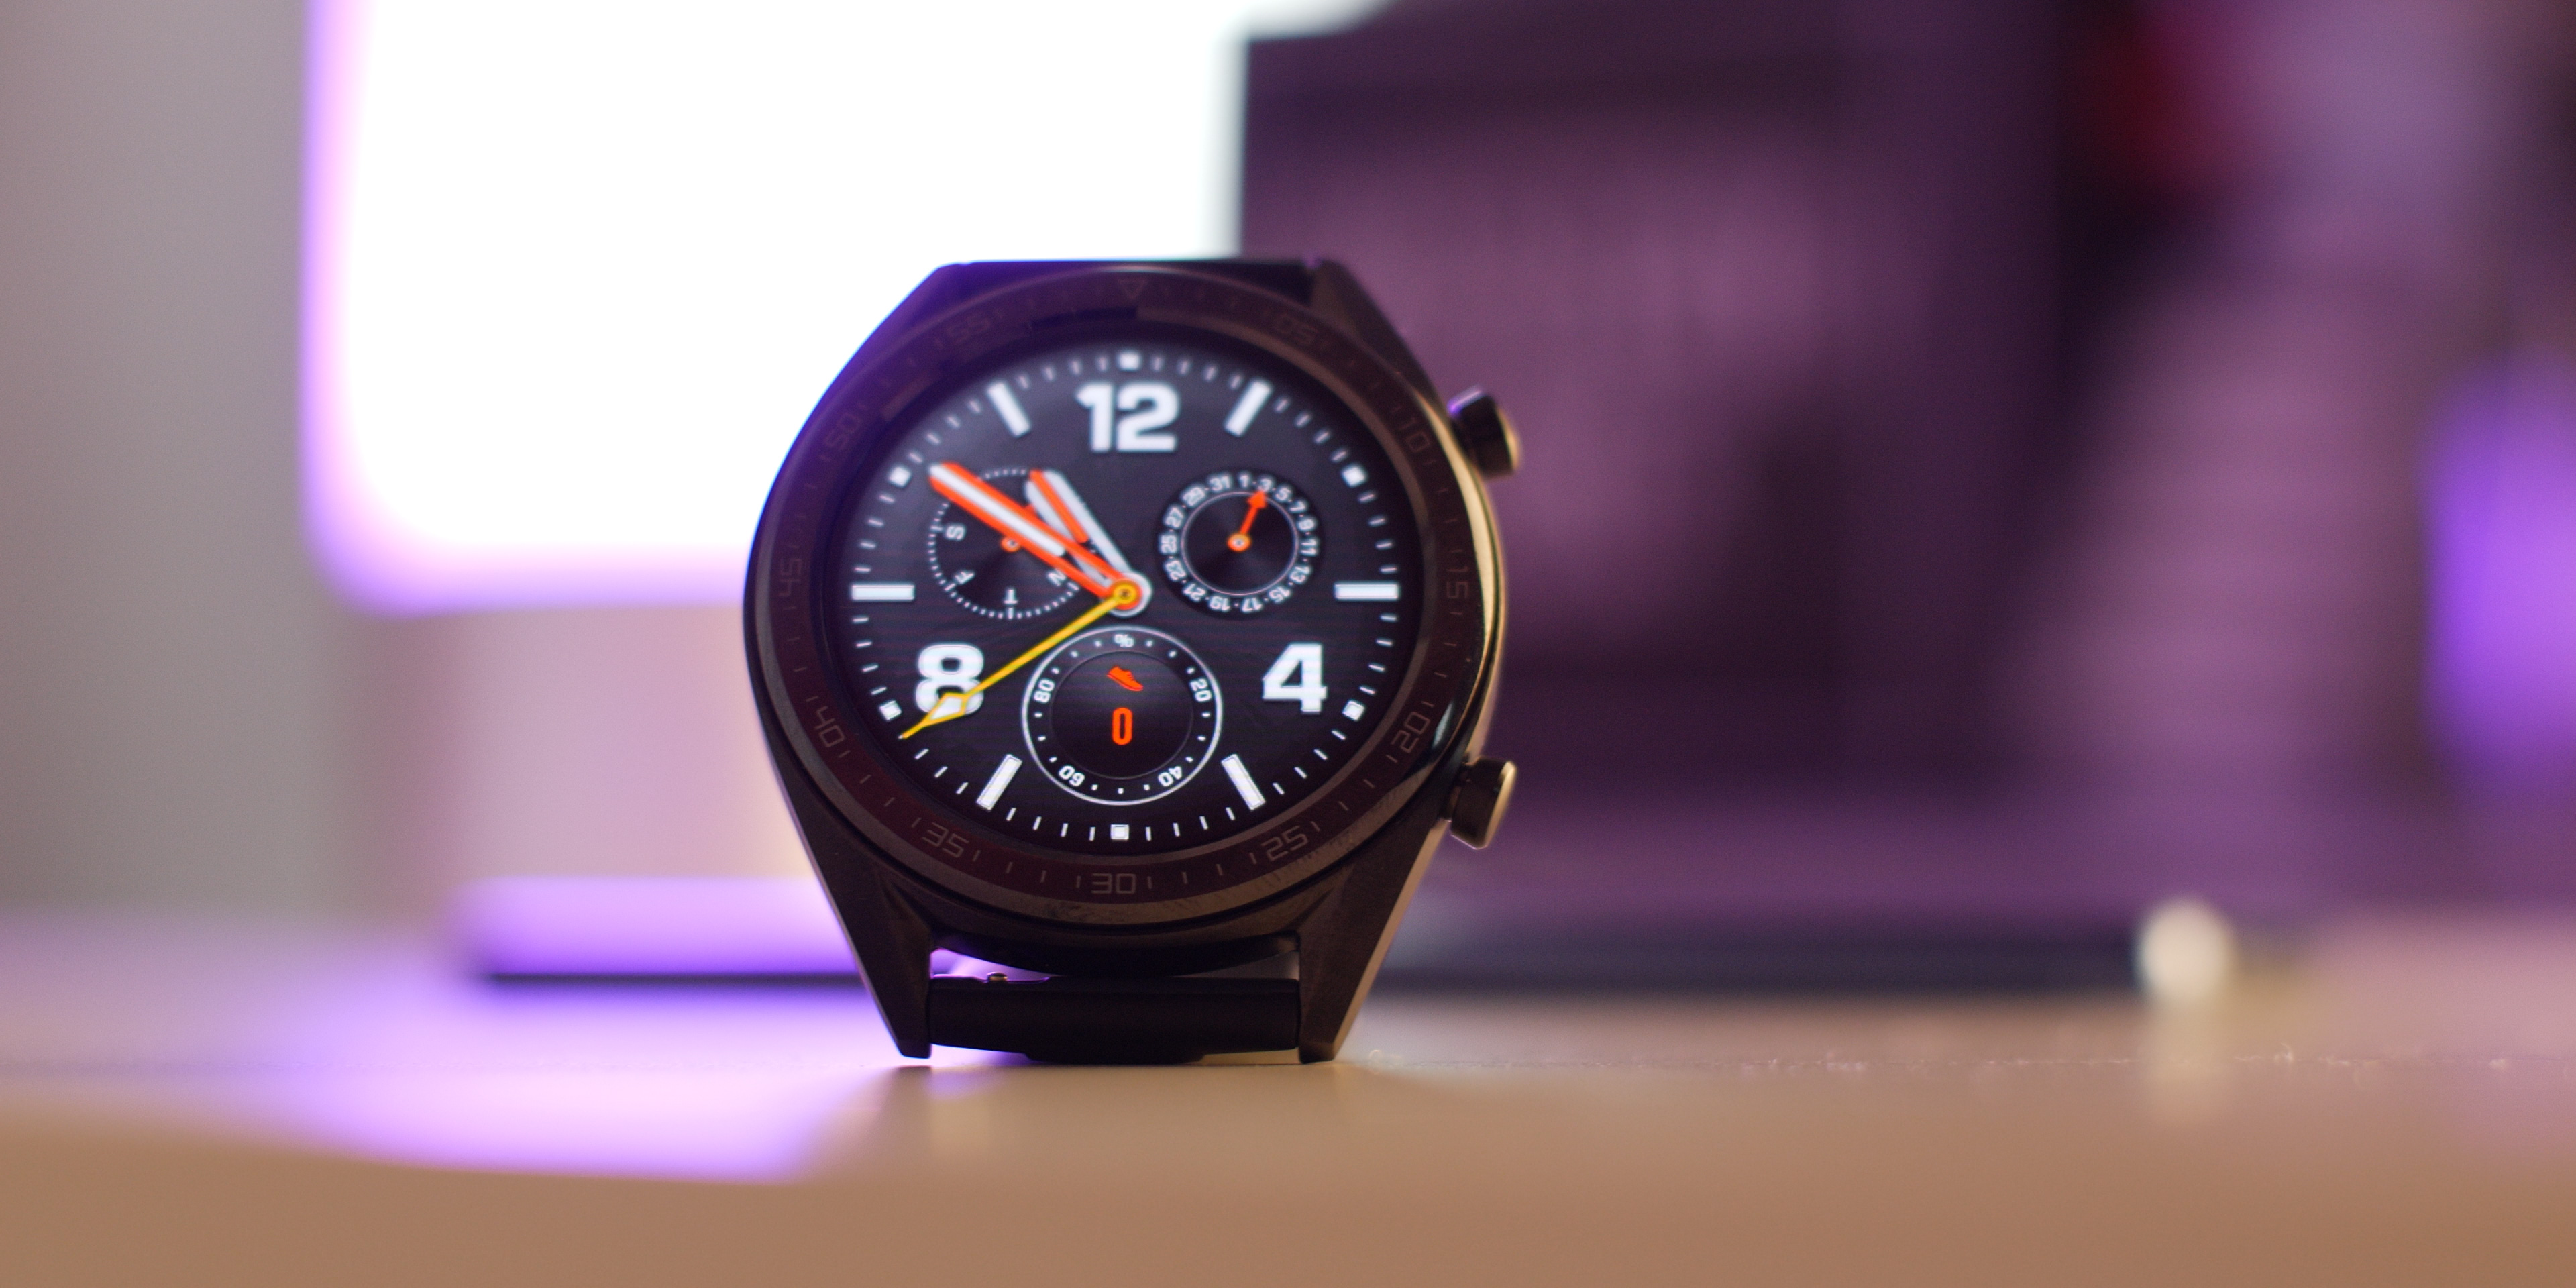 Huawei Watch GT watch face